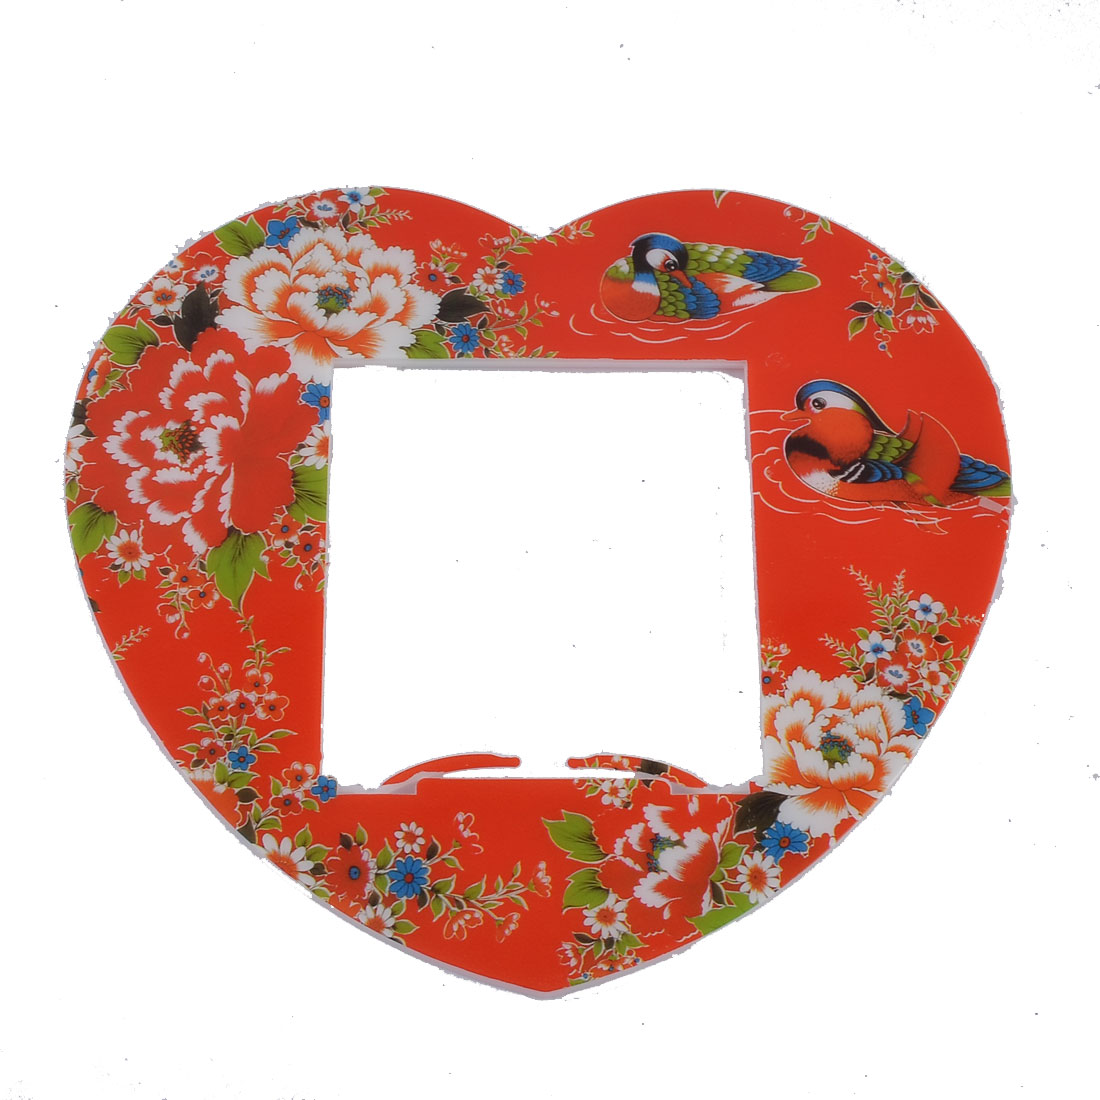 Plastic Birds Flowers Pattern Heart Shape Light Switch Cover Plate Red